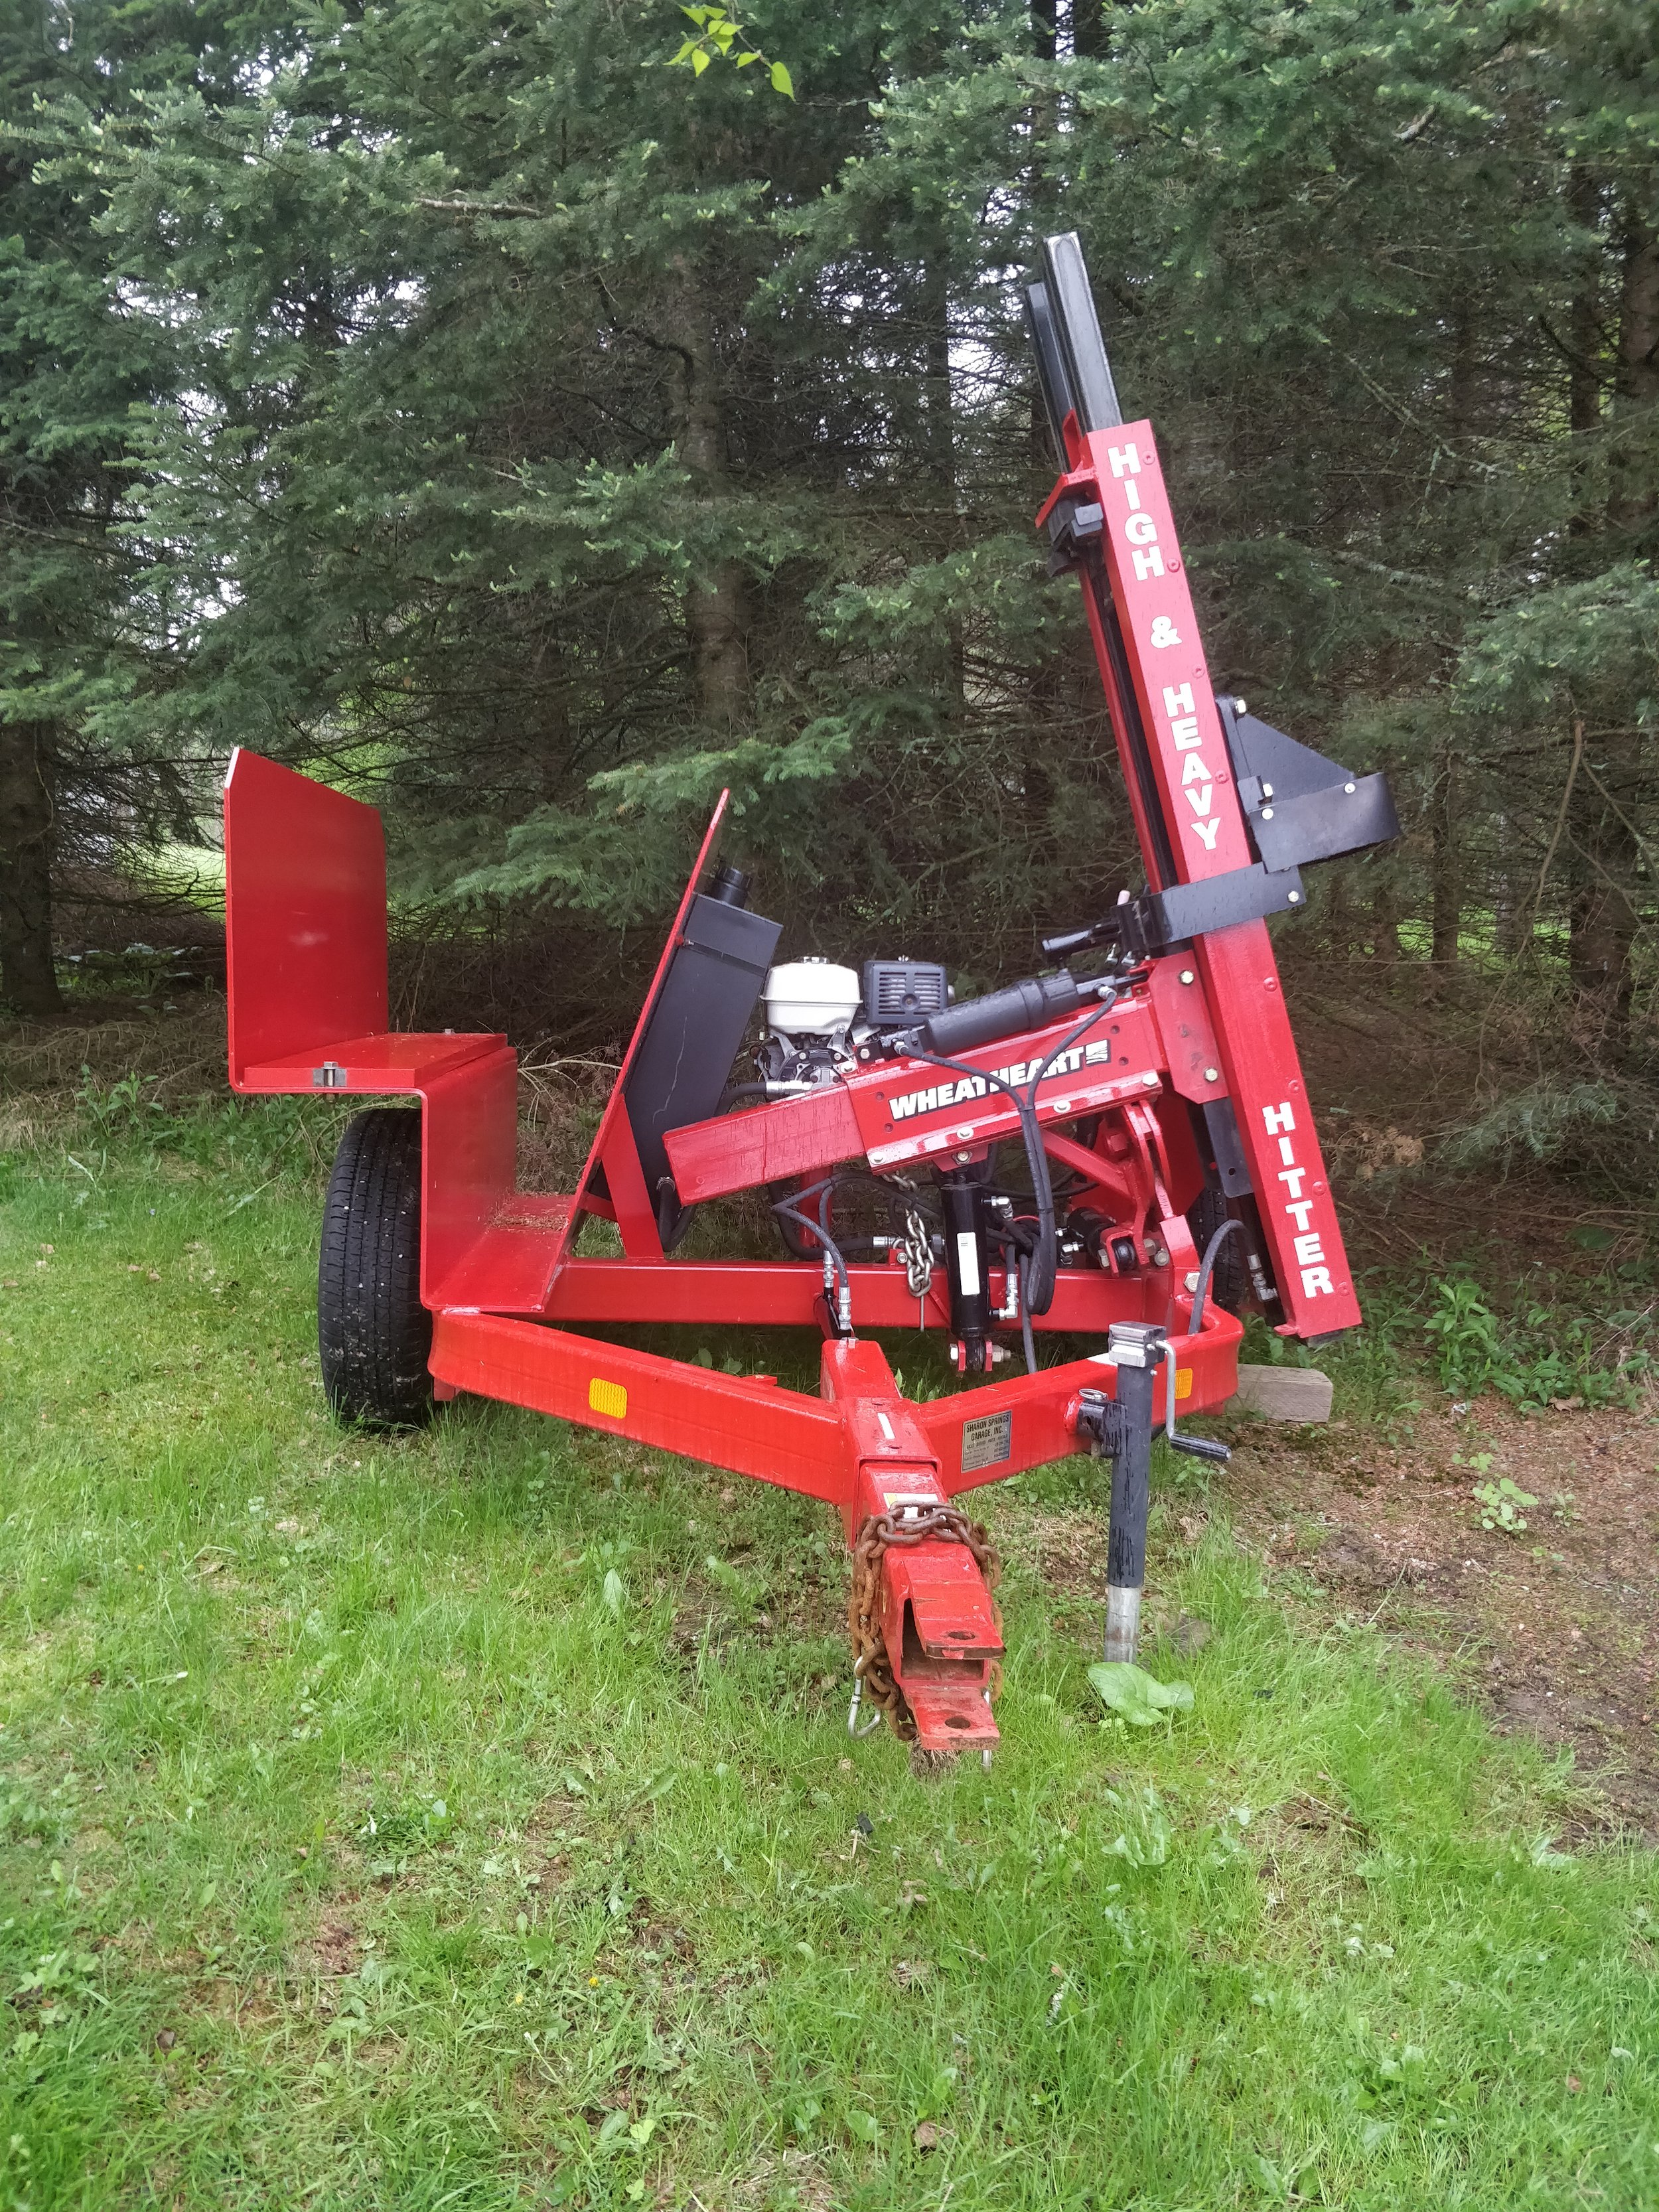 Post Pounder Rental$75.00 a day - Please call our office to schedule a pick up and drop off time